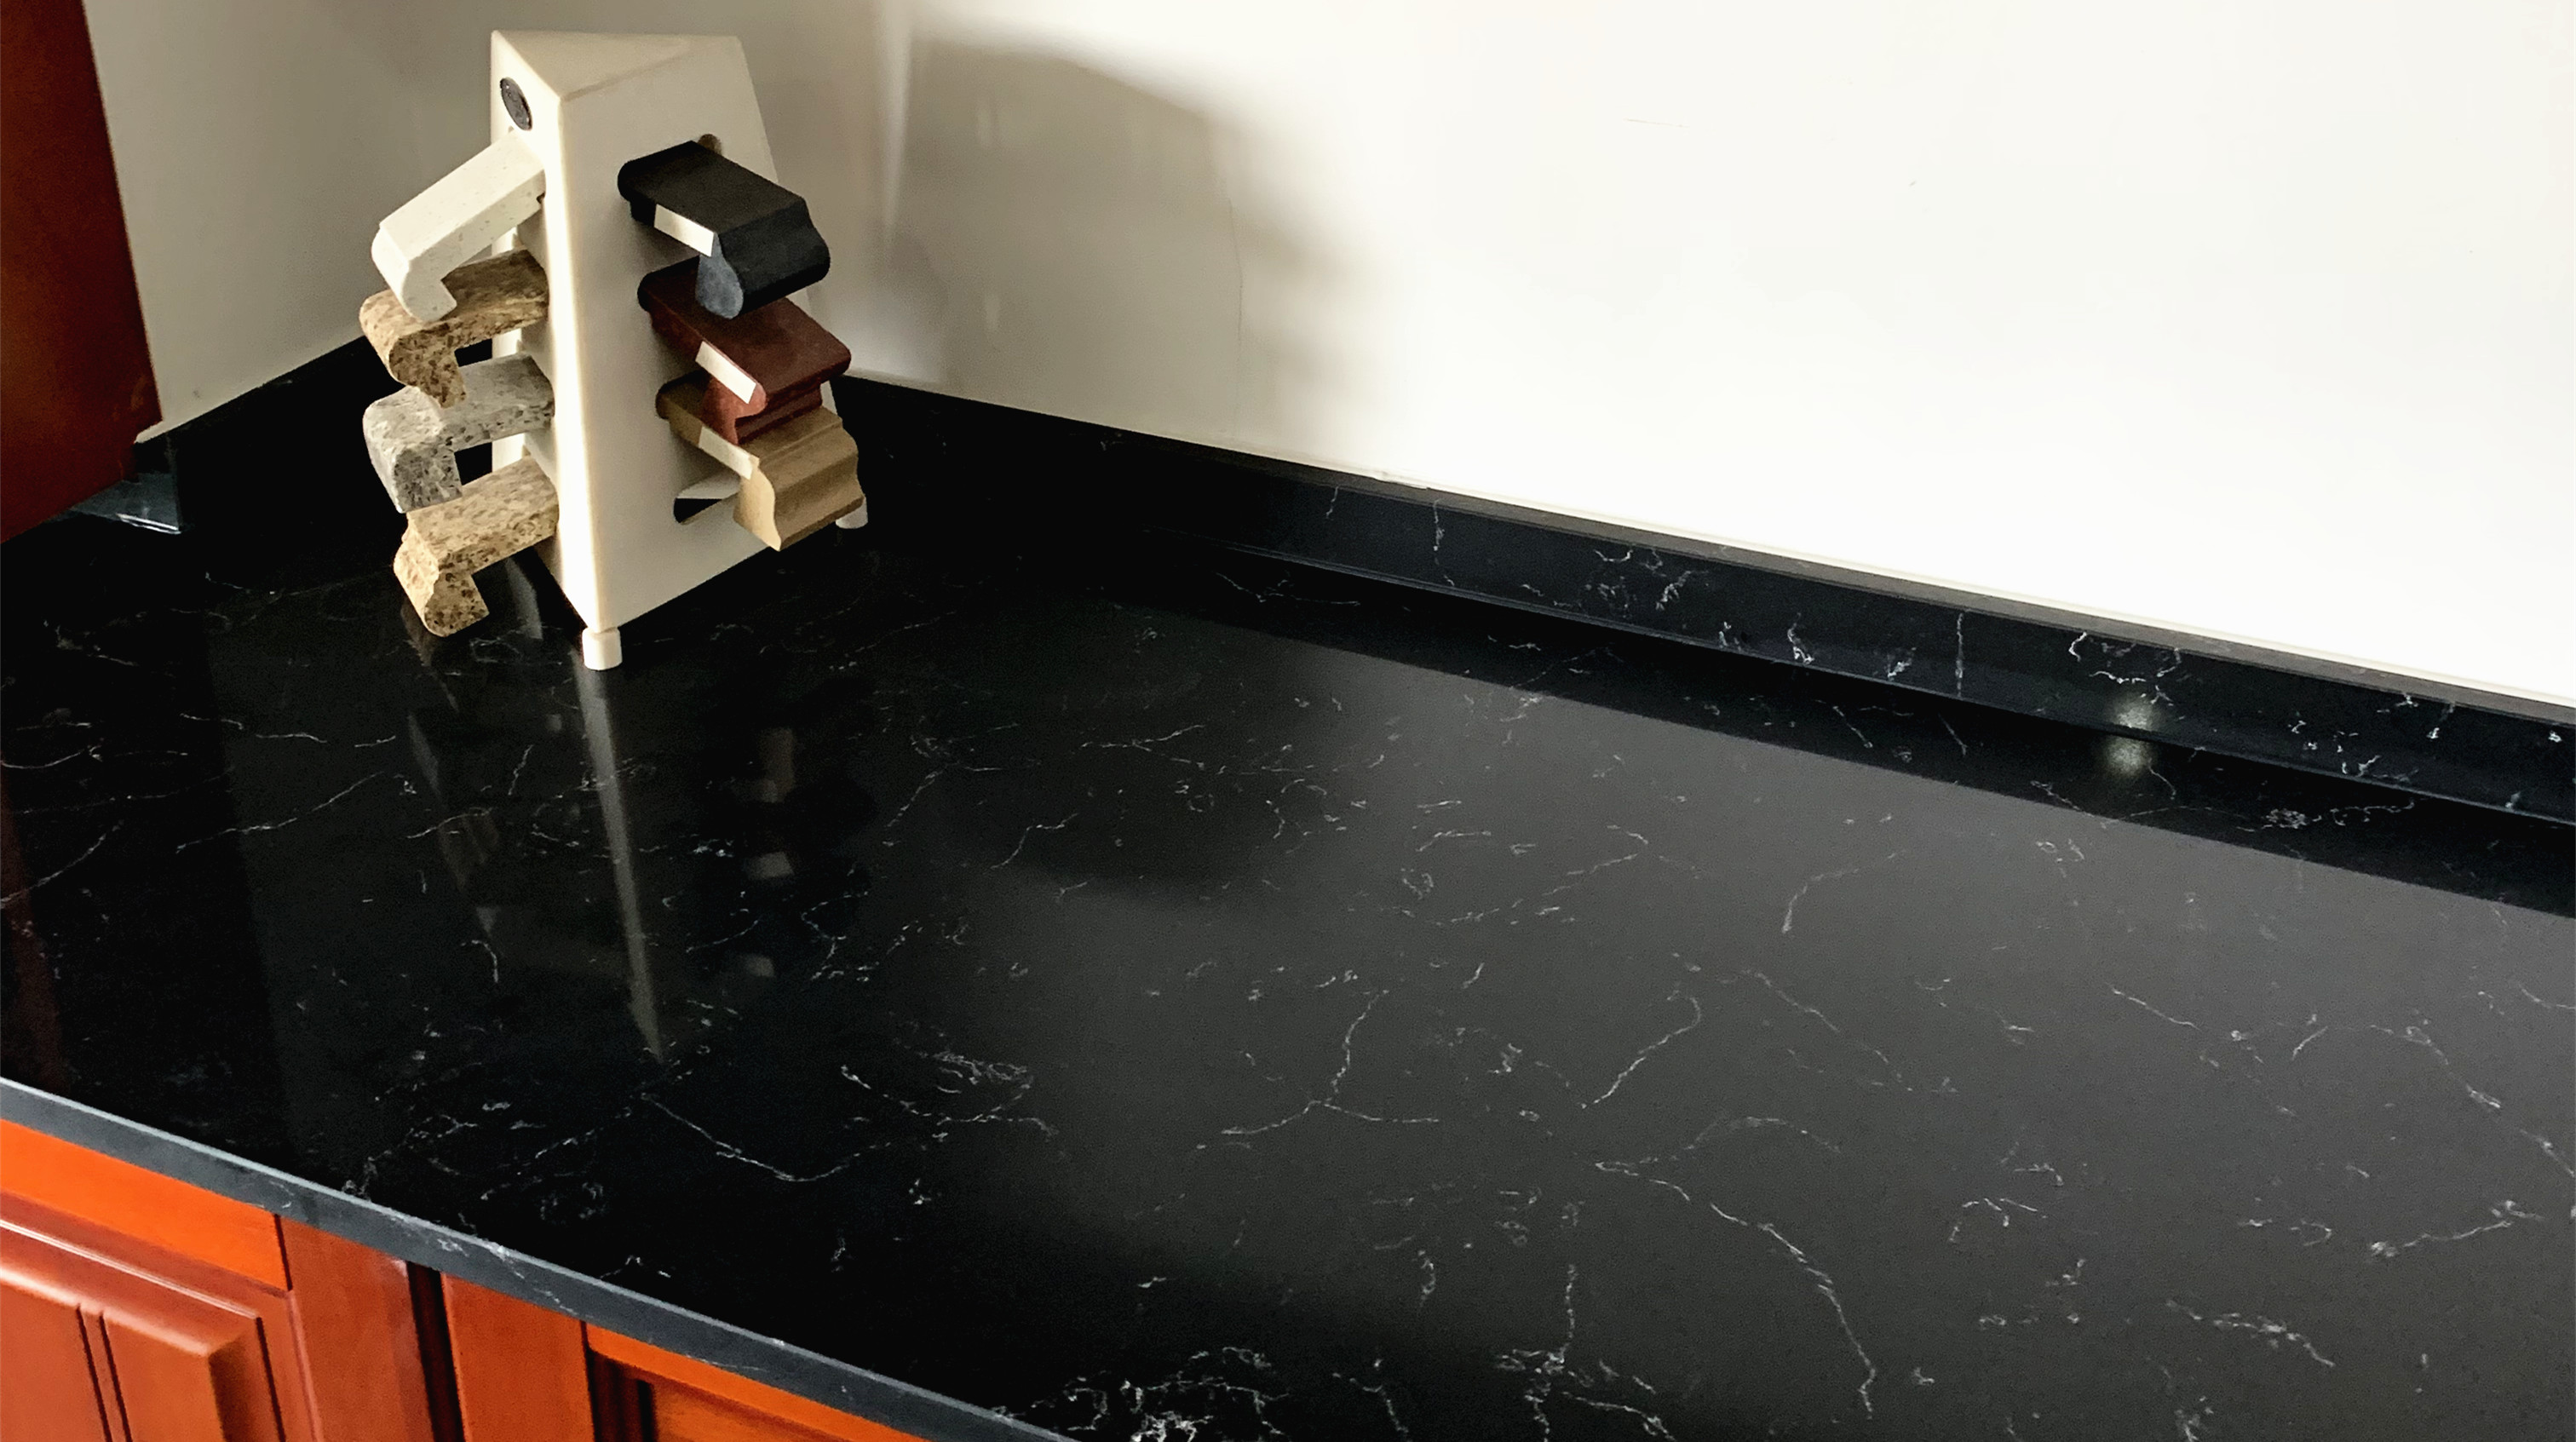 DL-19630 Victoria Black Quartz Slab Counter Top